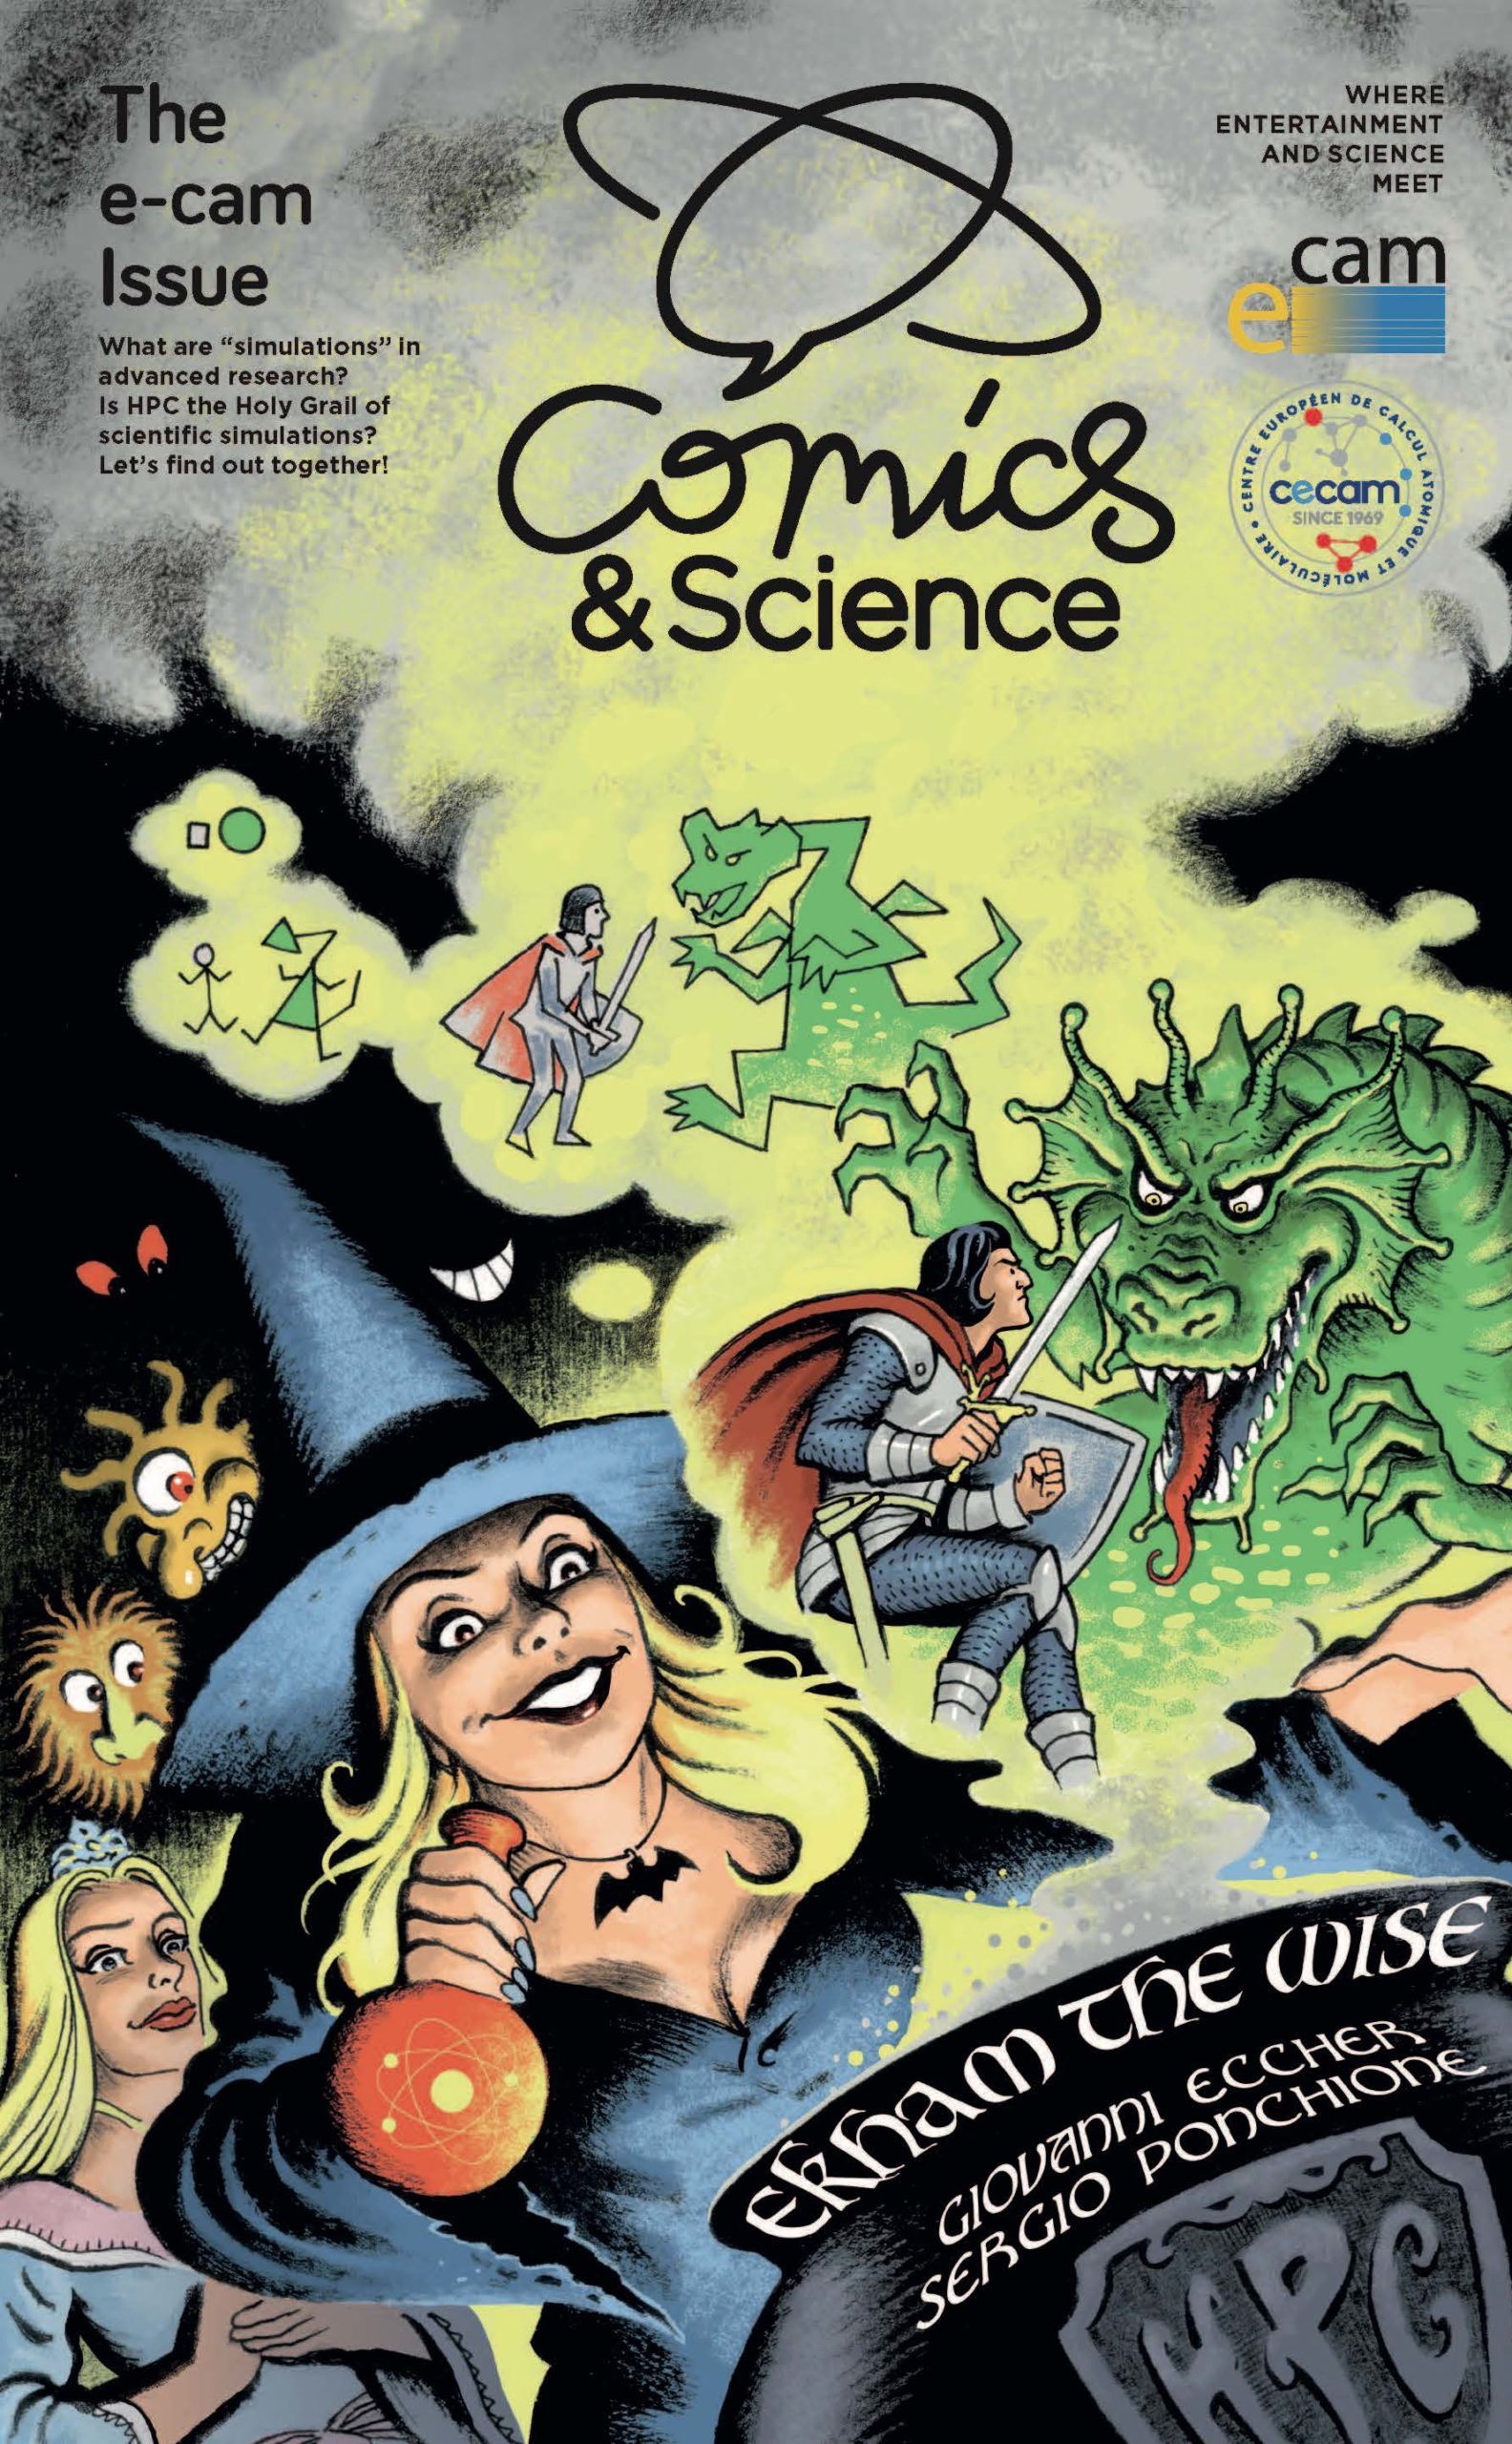 Comics & Science ? The E-CAM issue: an experiment in dissemination